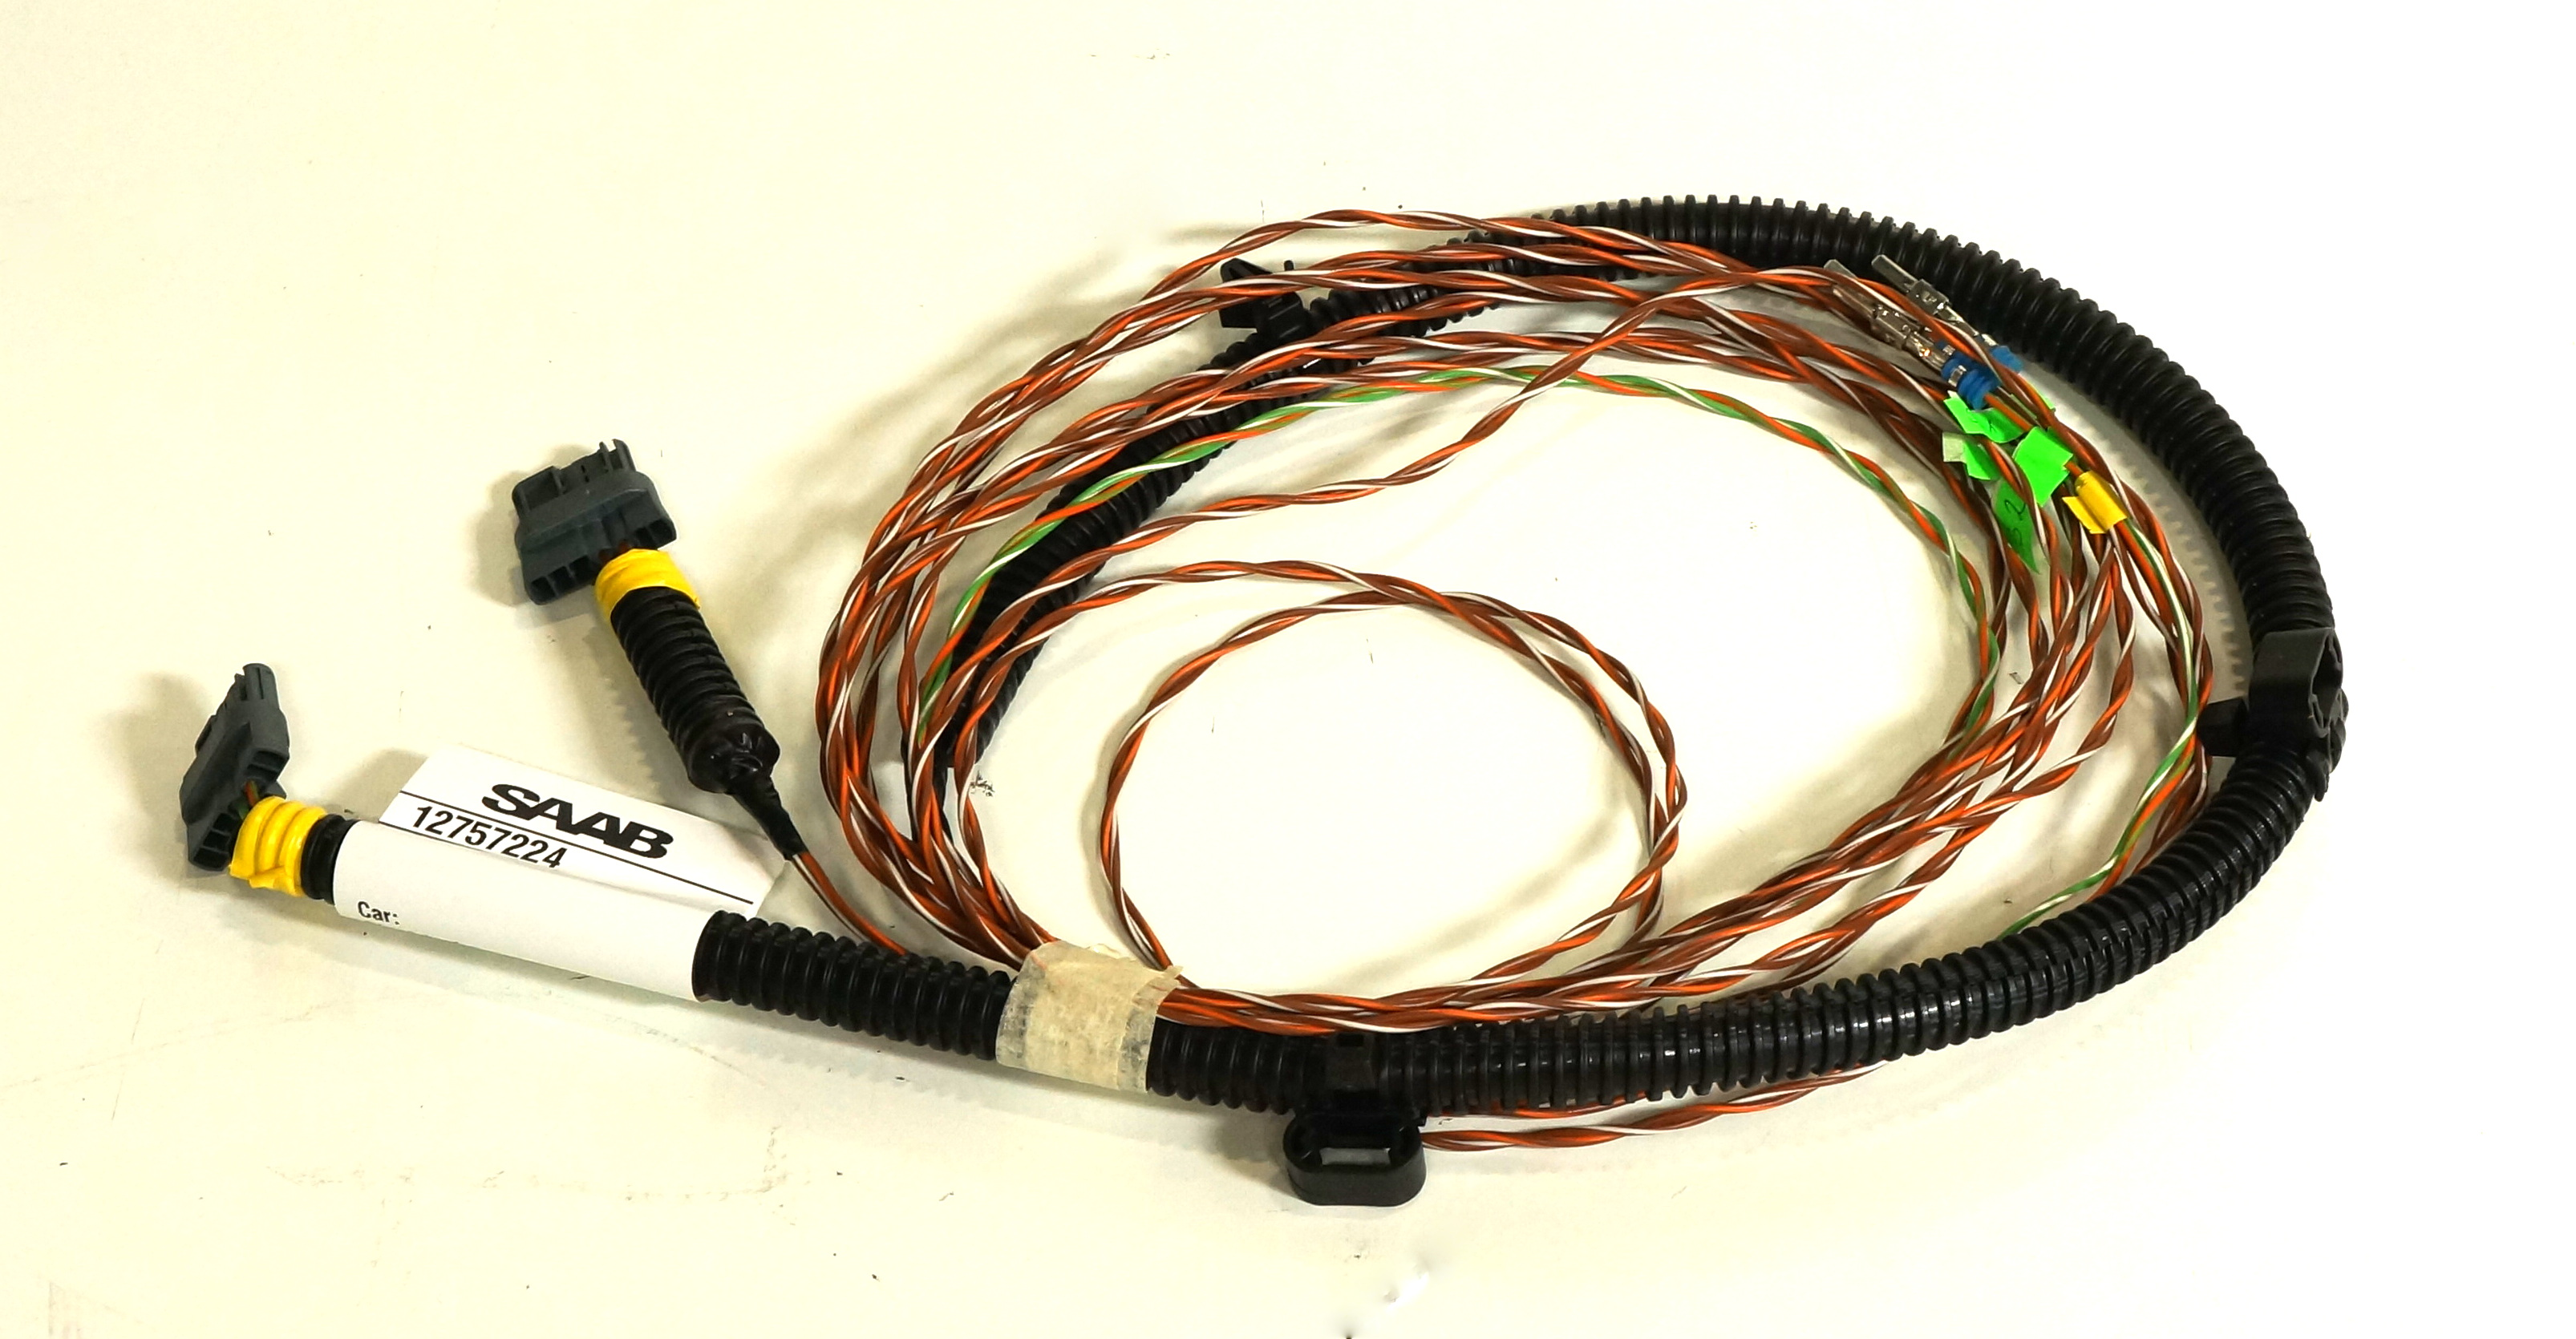 12757224 esaabparts com saab 9 3 (9440) \u003e electrical parts \u003e wiring saab 9-3 fog light wiring harness at sewacar.co